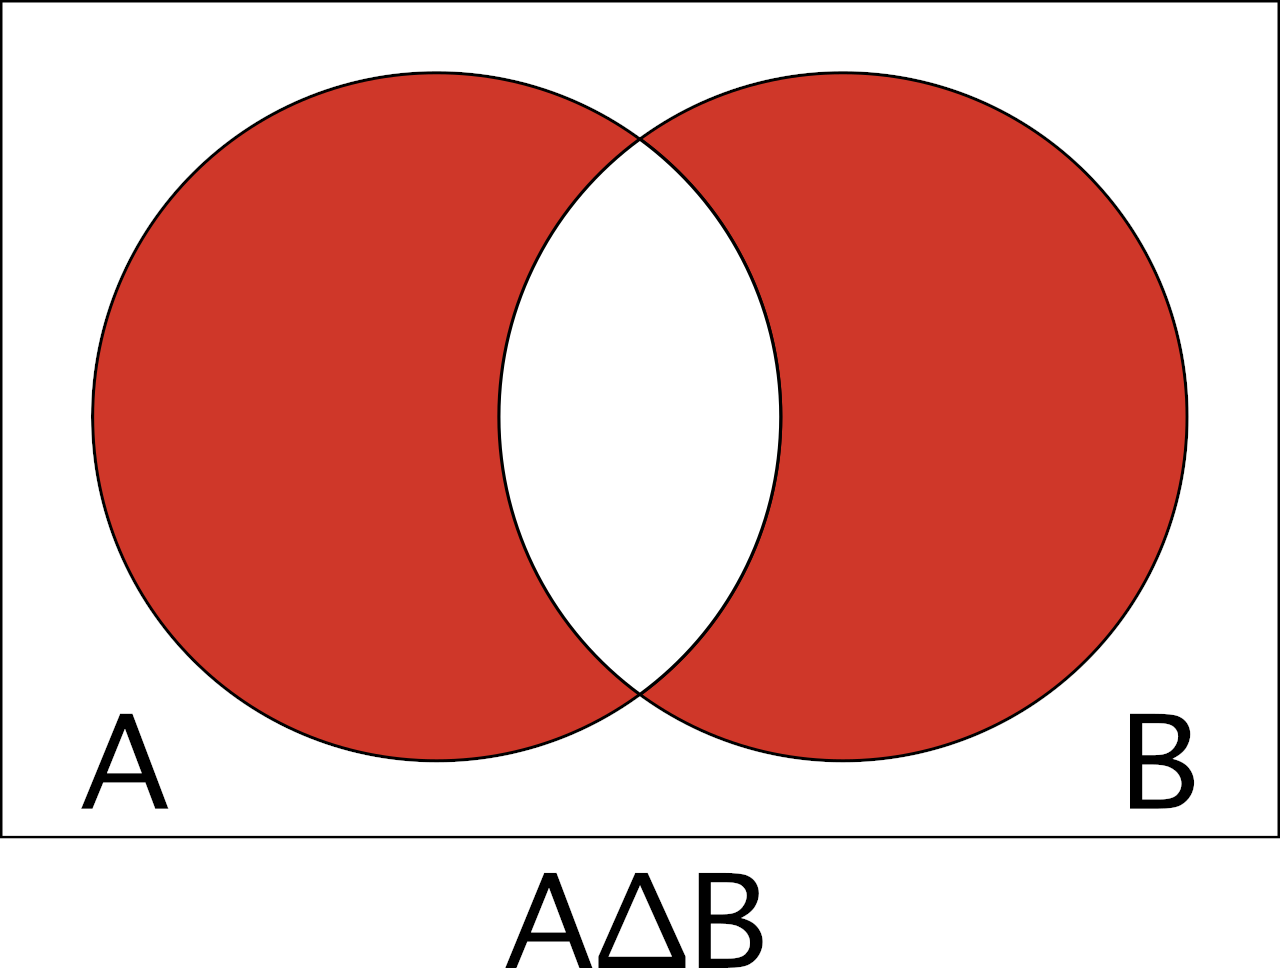 Venn diagram to help visualize the symmetric difference of A and B